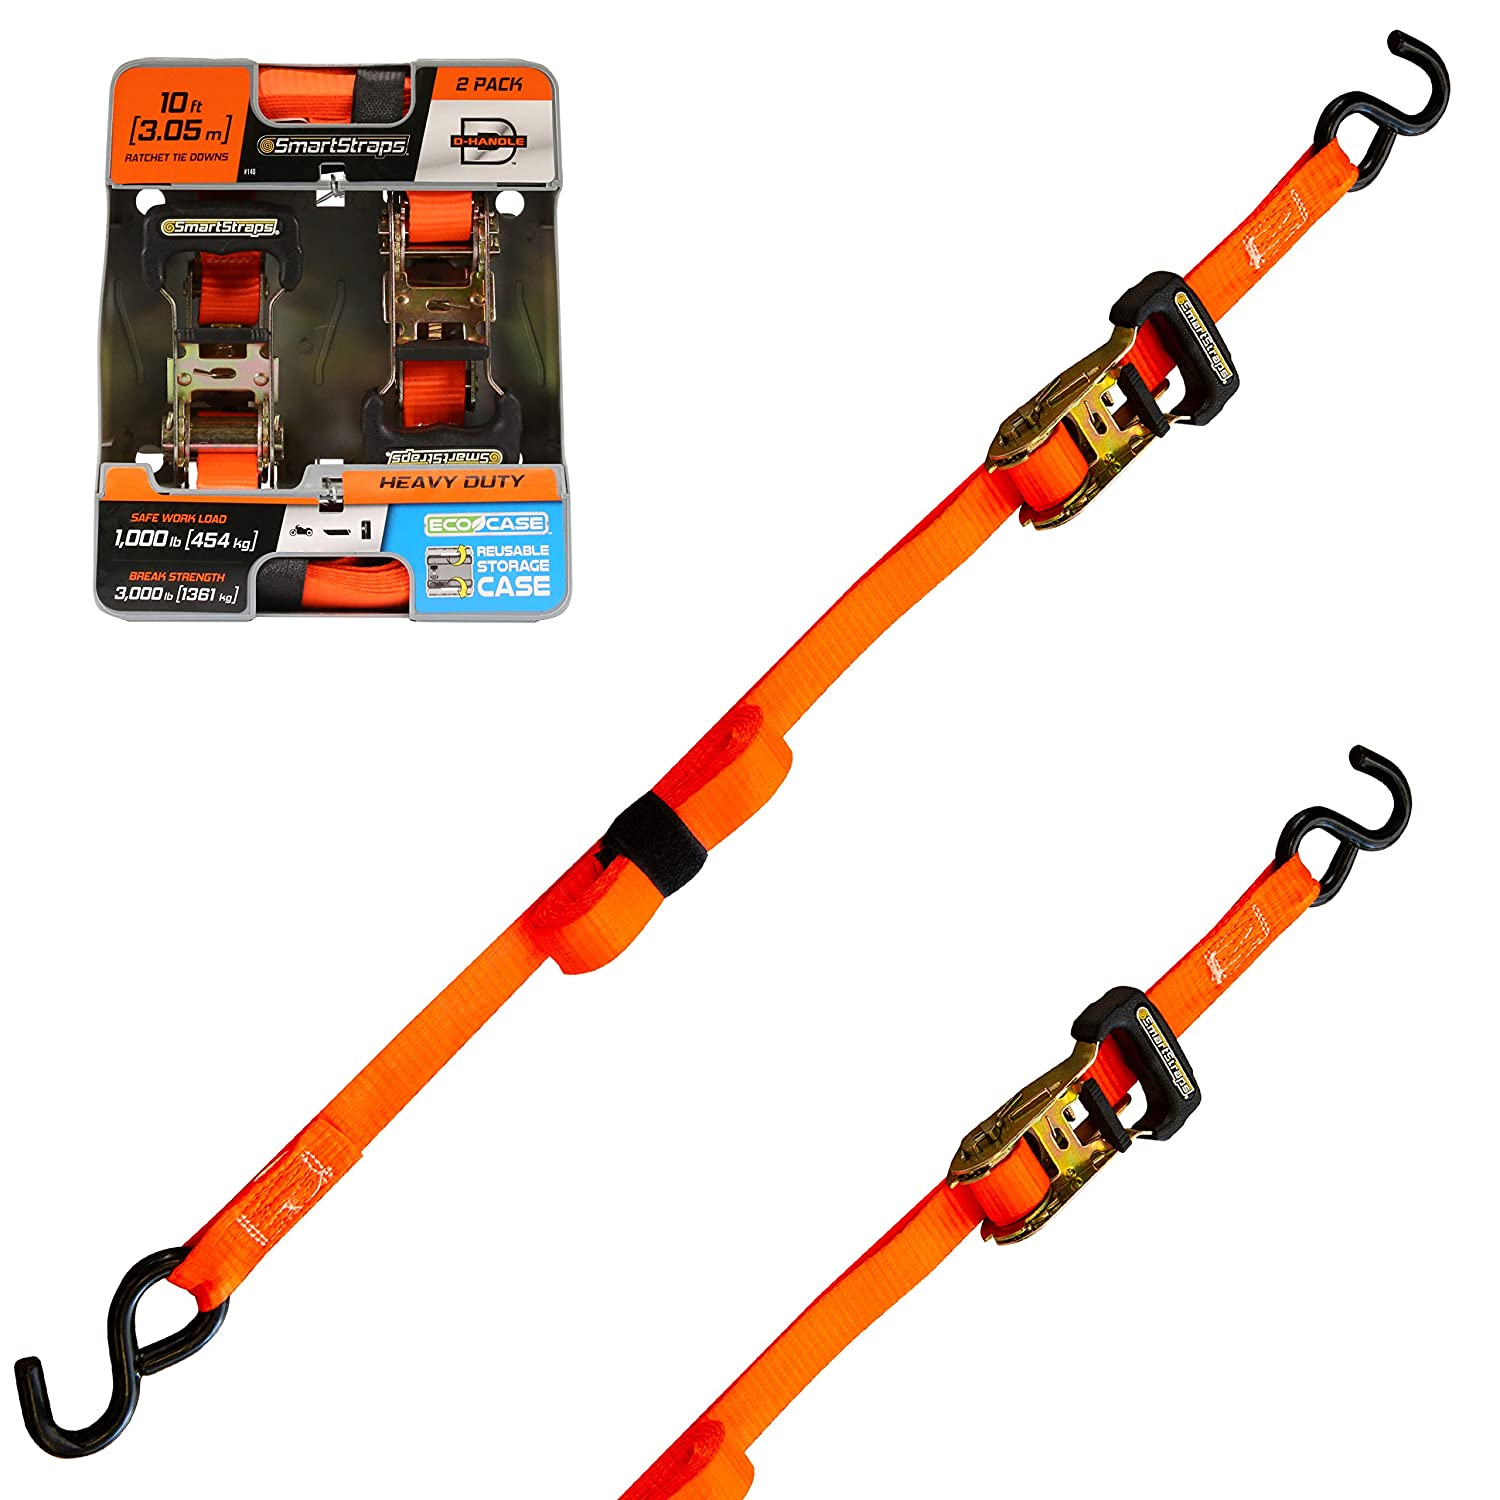 SmartStraps Ratchet Straps - 10ft OR Padded Ratchet HDuty 2pk 3,000lb